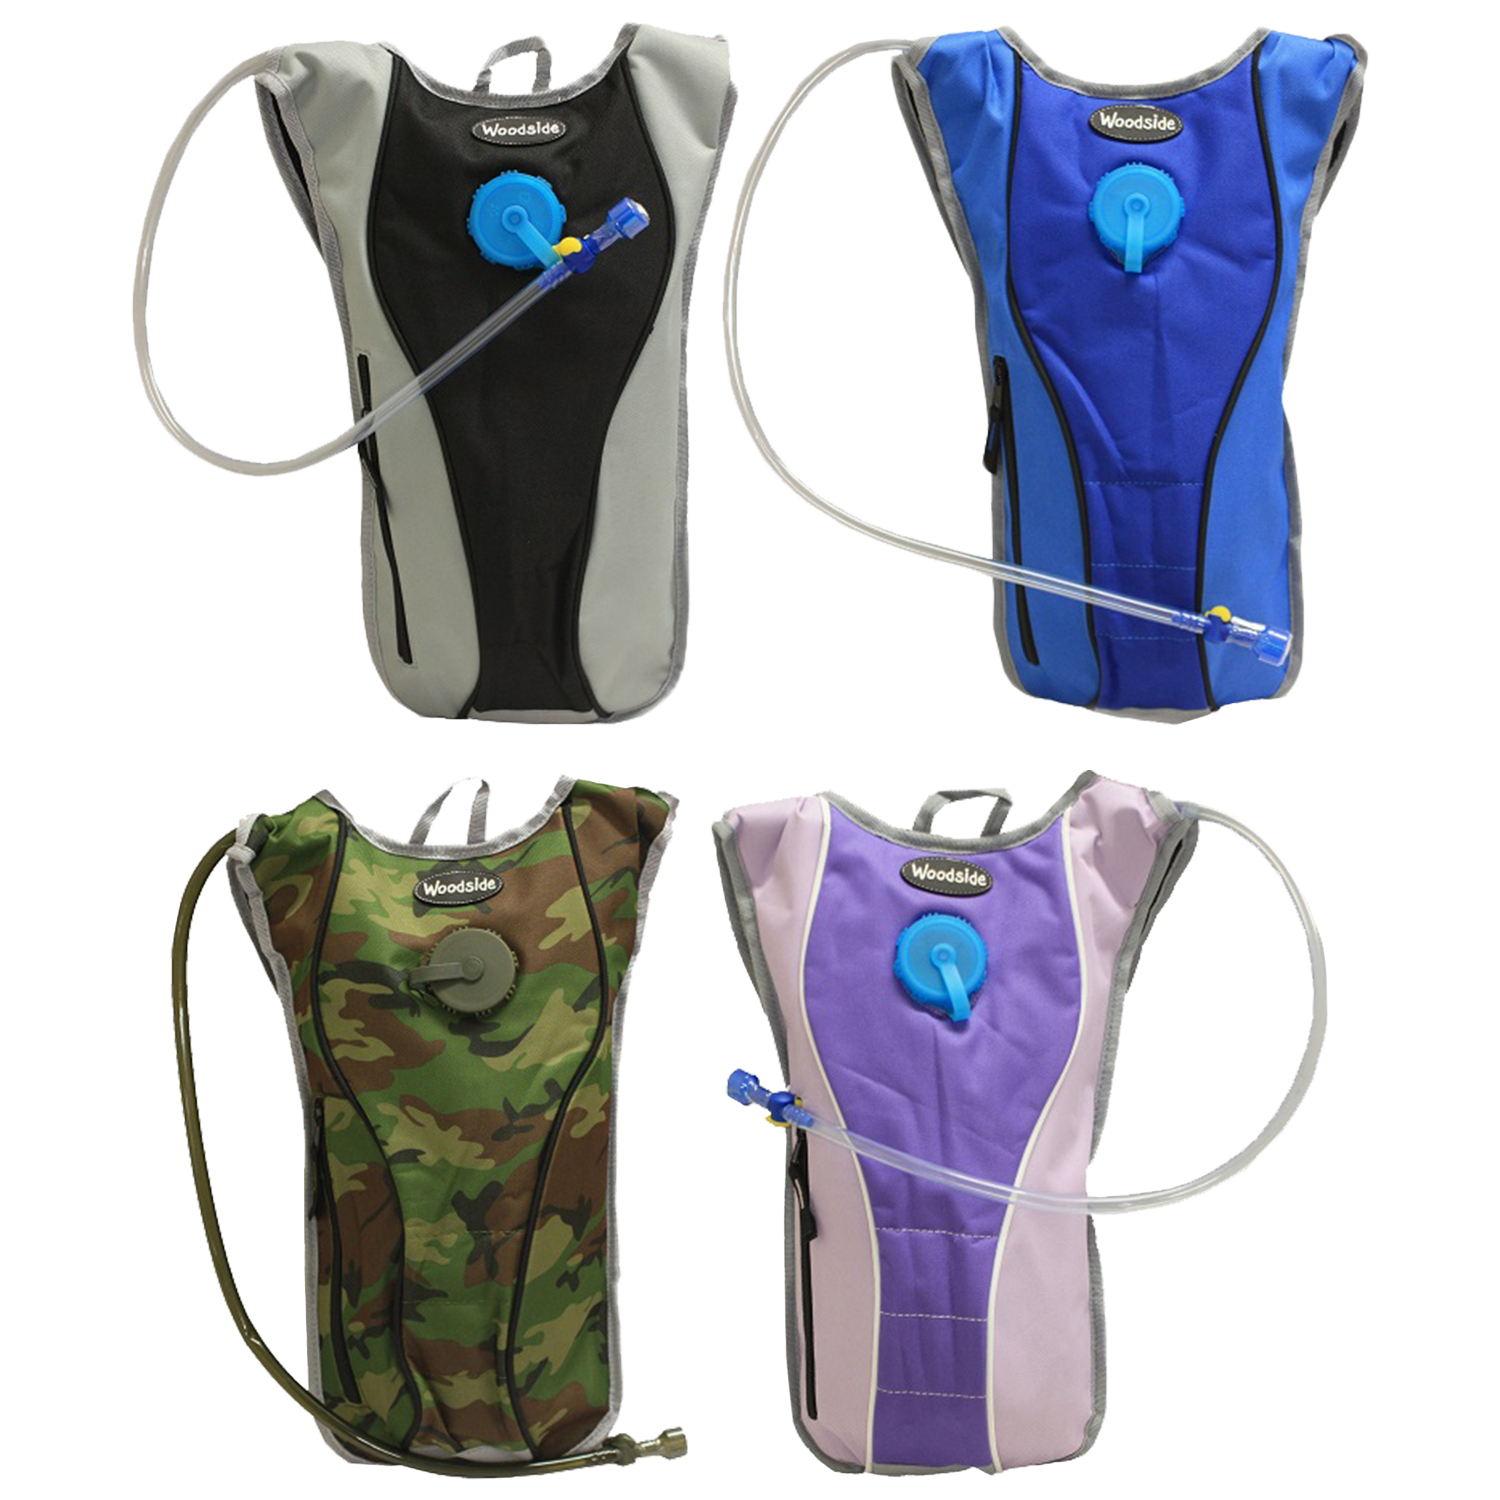 Woodside 2l Hydration Pack Water Rucksack Backpack Cycling